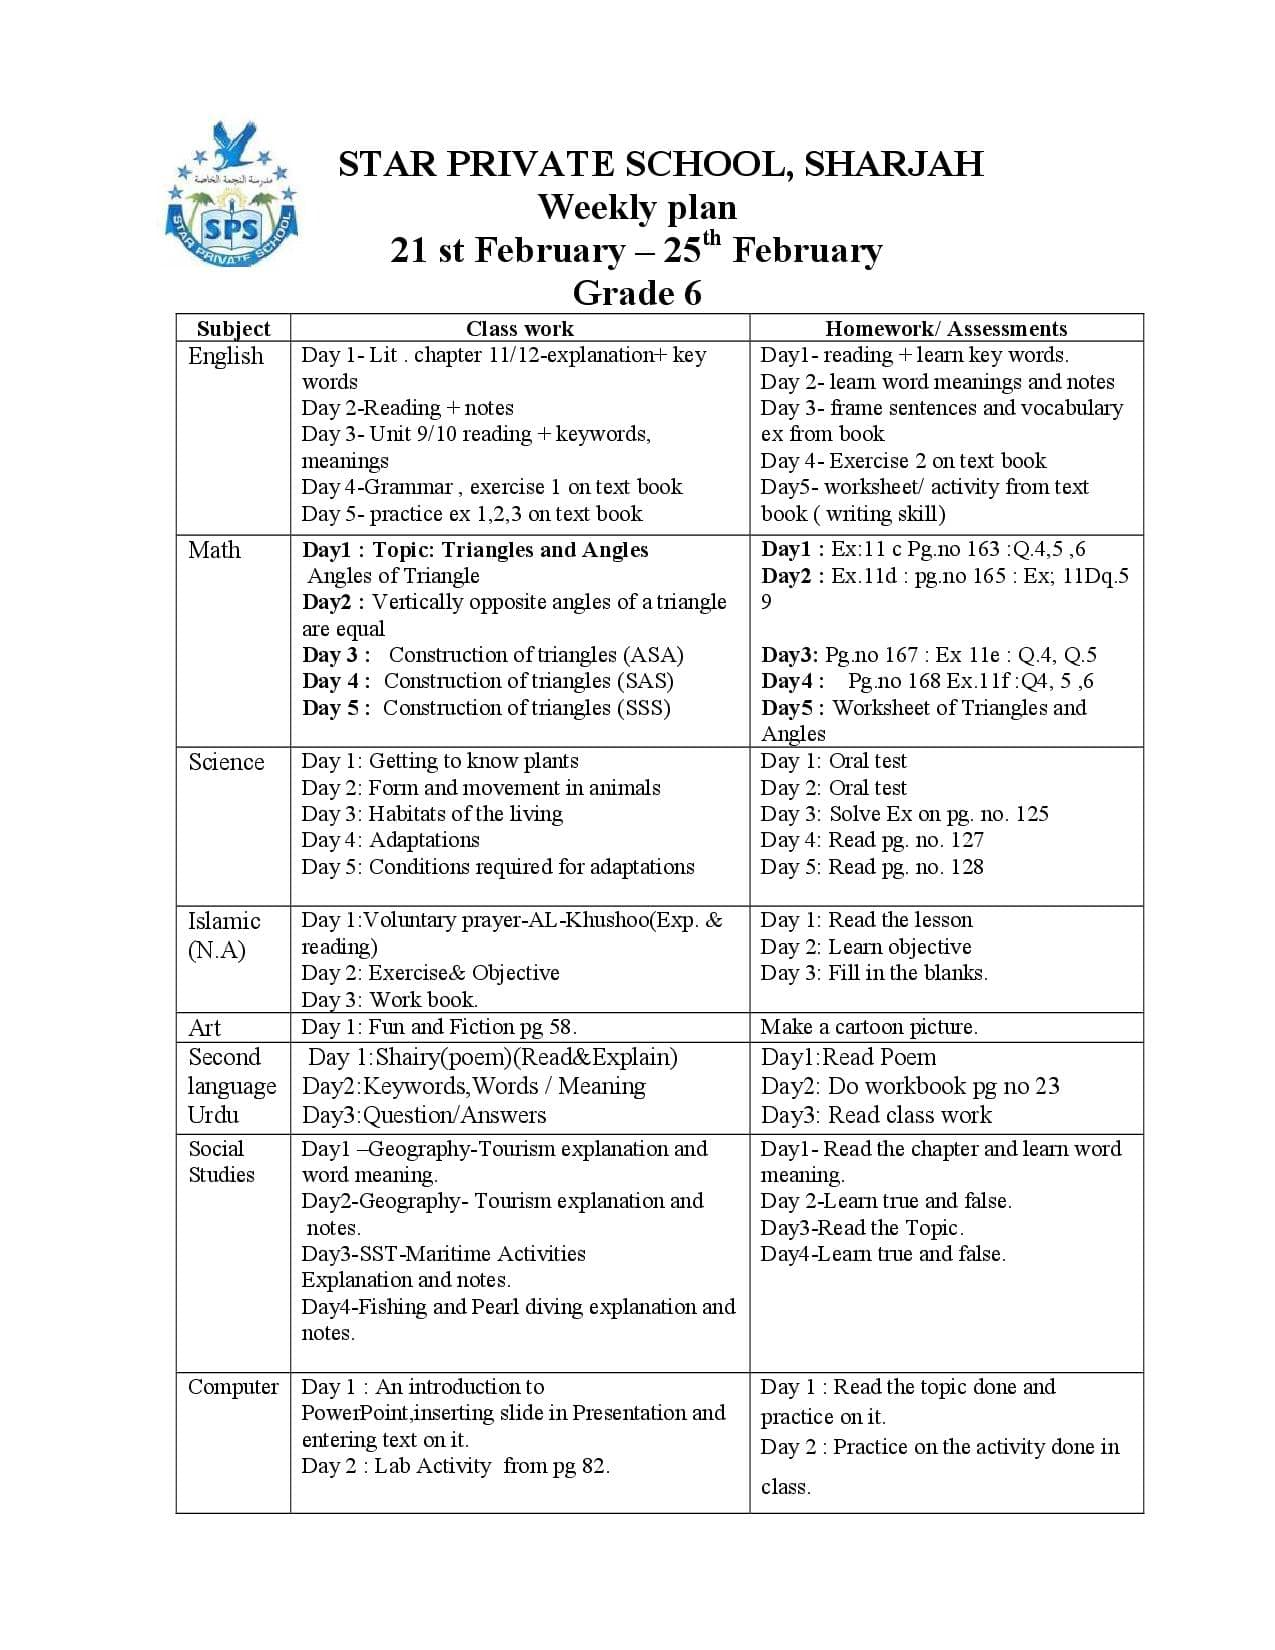 Weekly Plan Grade 4 to 8 (21st Feb'16 to 25th Feb'16) | Star